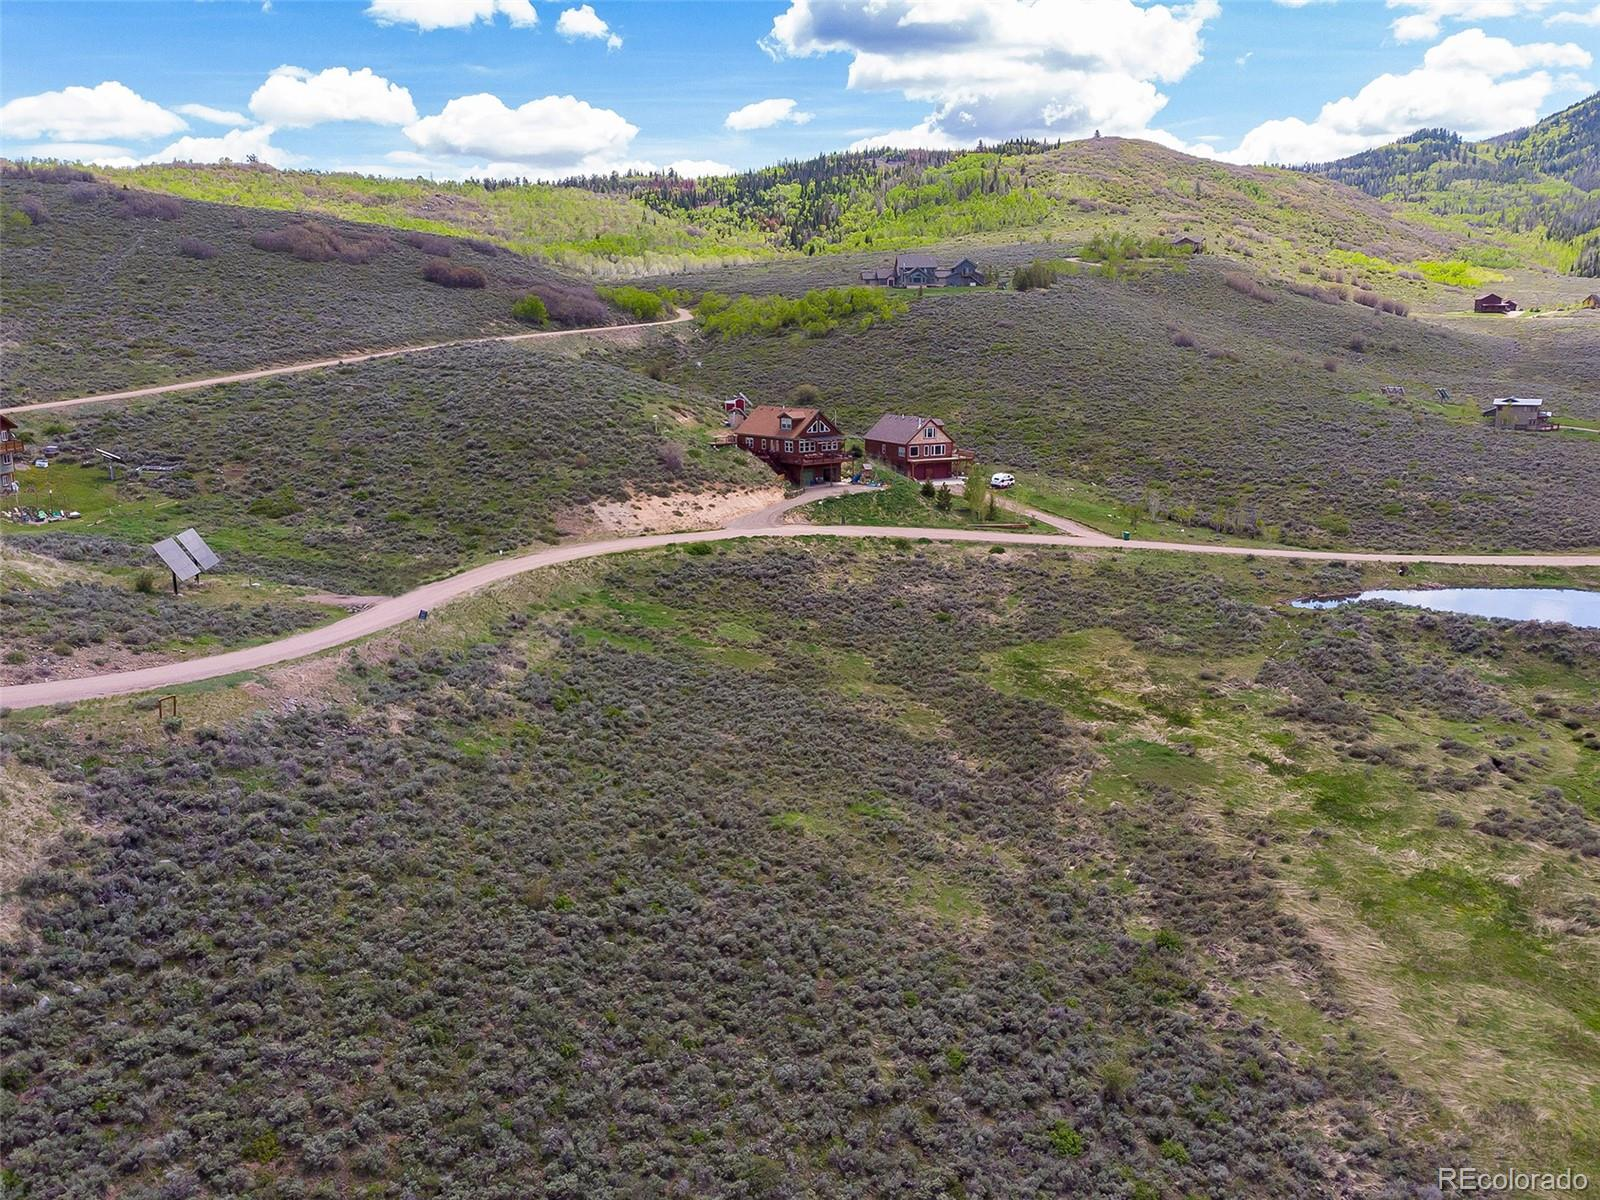 MLS# 7692287 - 31535 Shoshone Way, Oak Creek, CO 80467